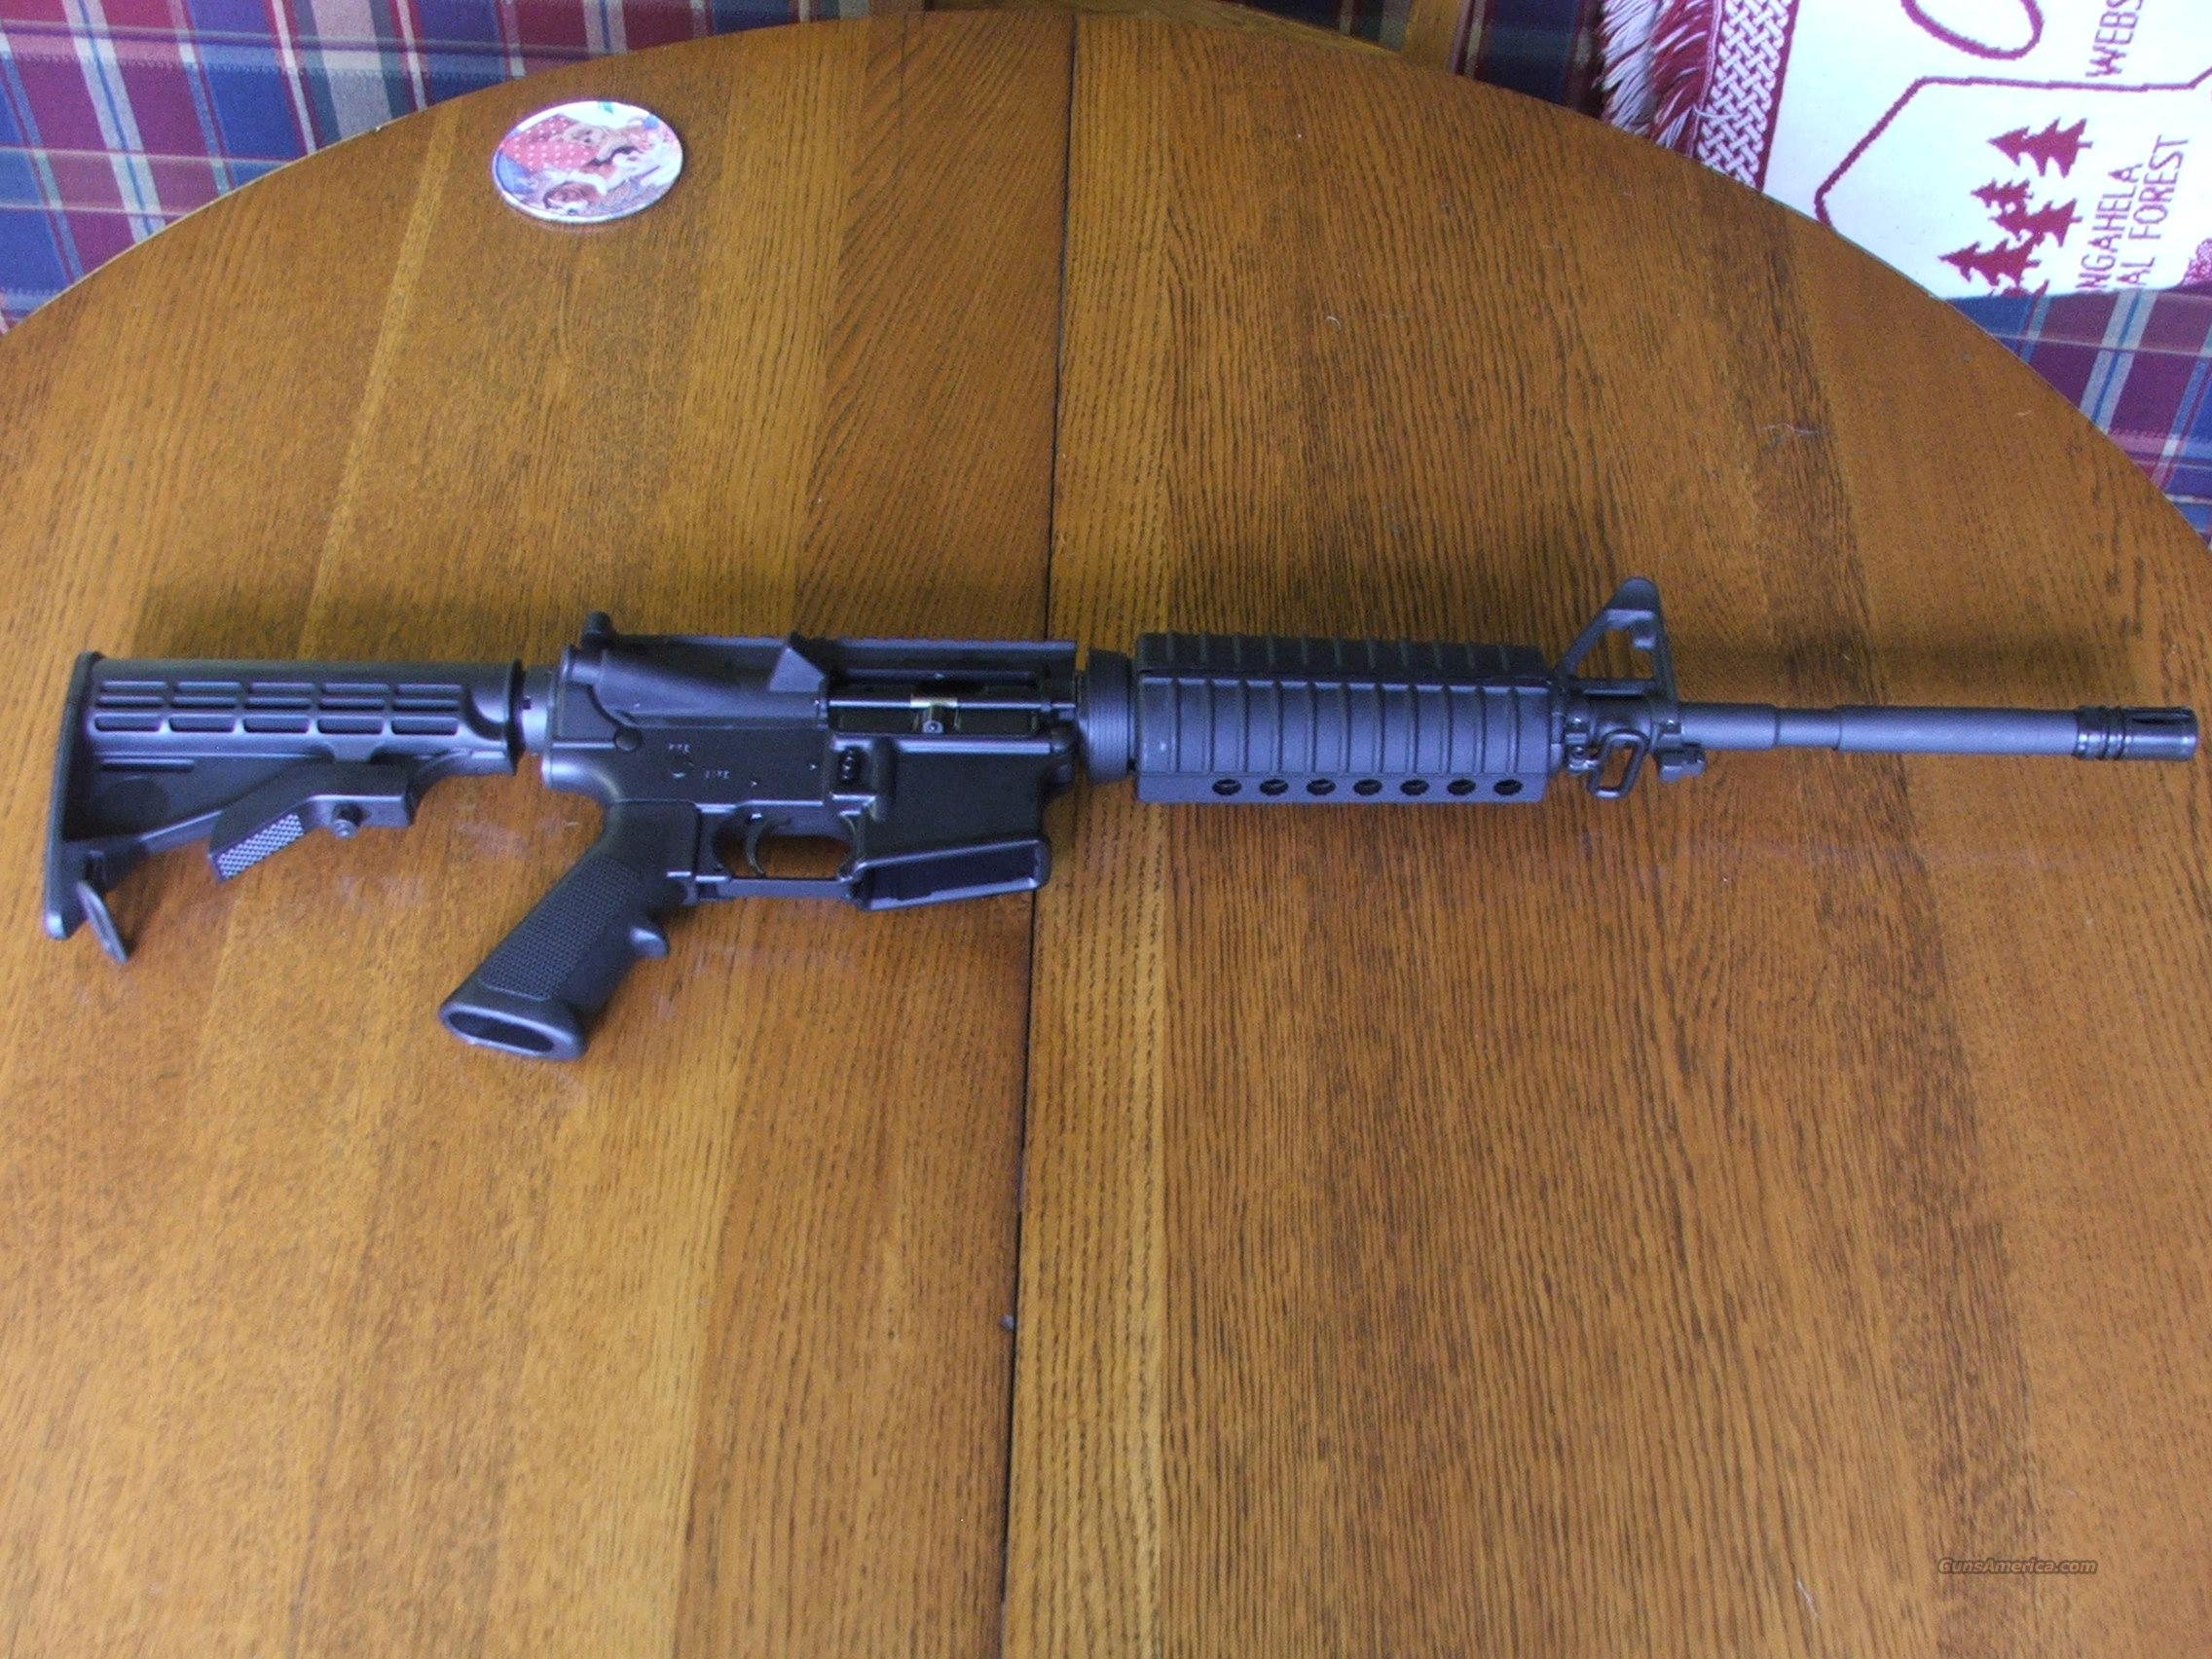 AR-15 M4 Style:  Fulton Armory  Guns > Rifles > AR-15 Rifles - Small Manufacturers > Complete Rifle